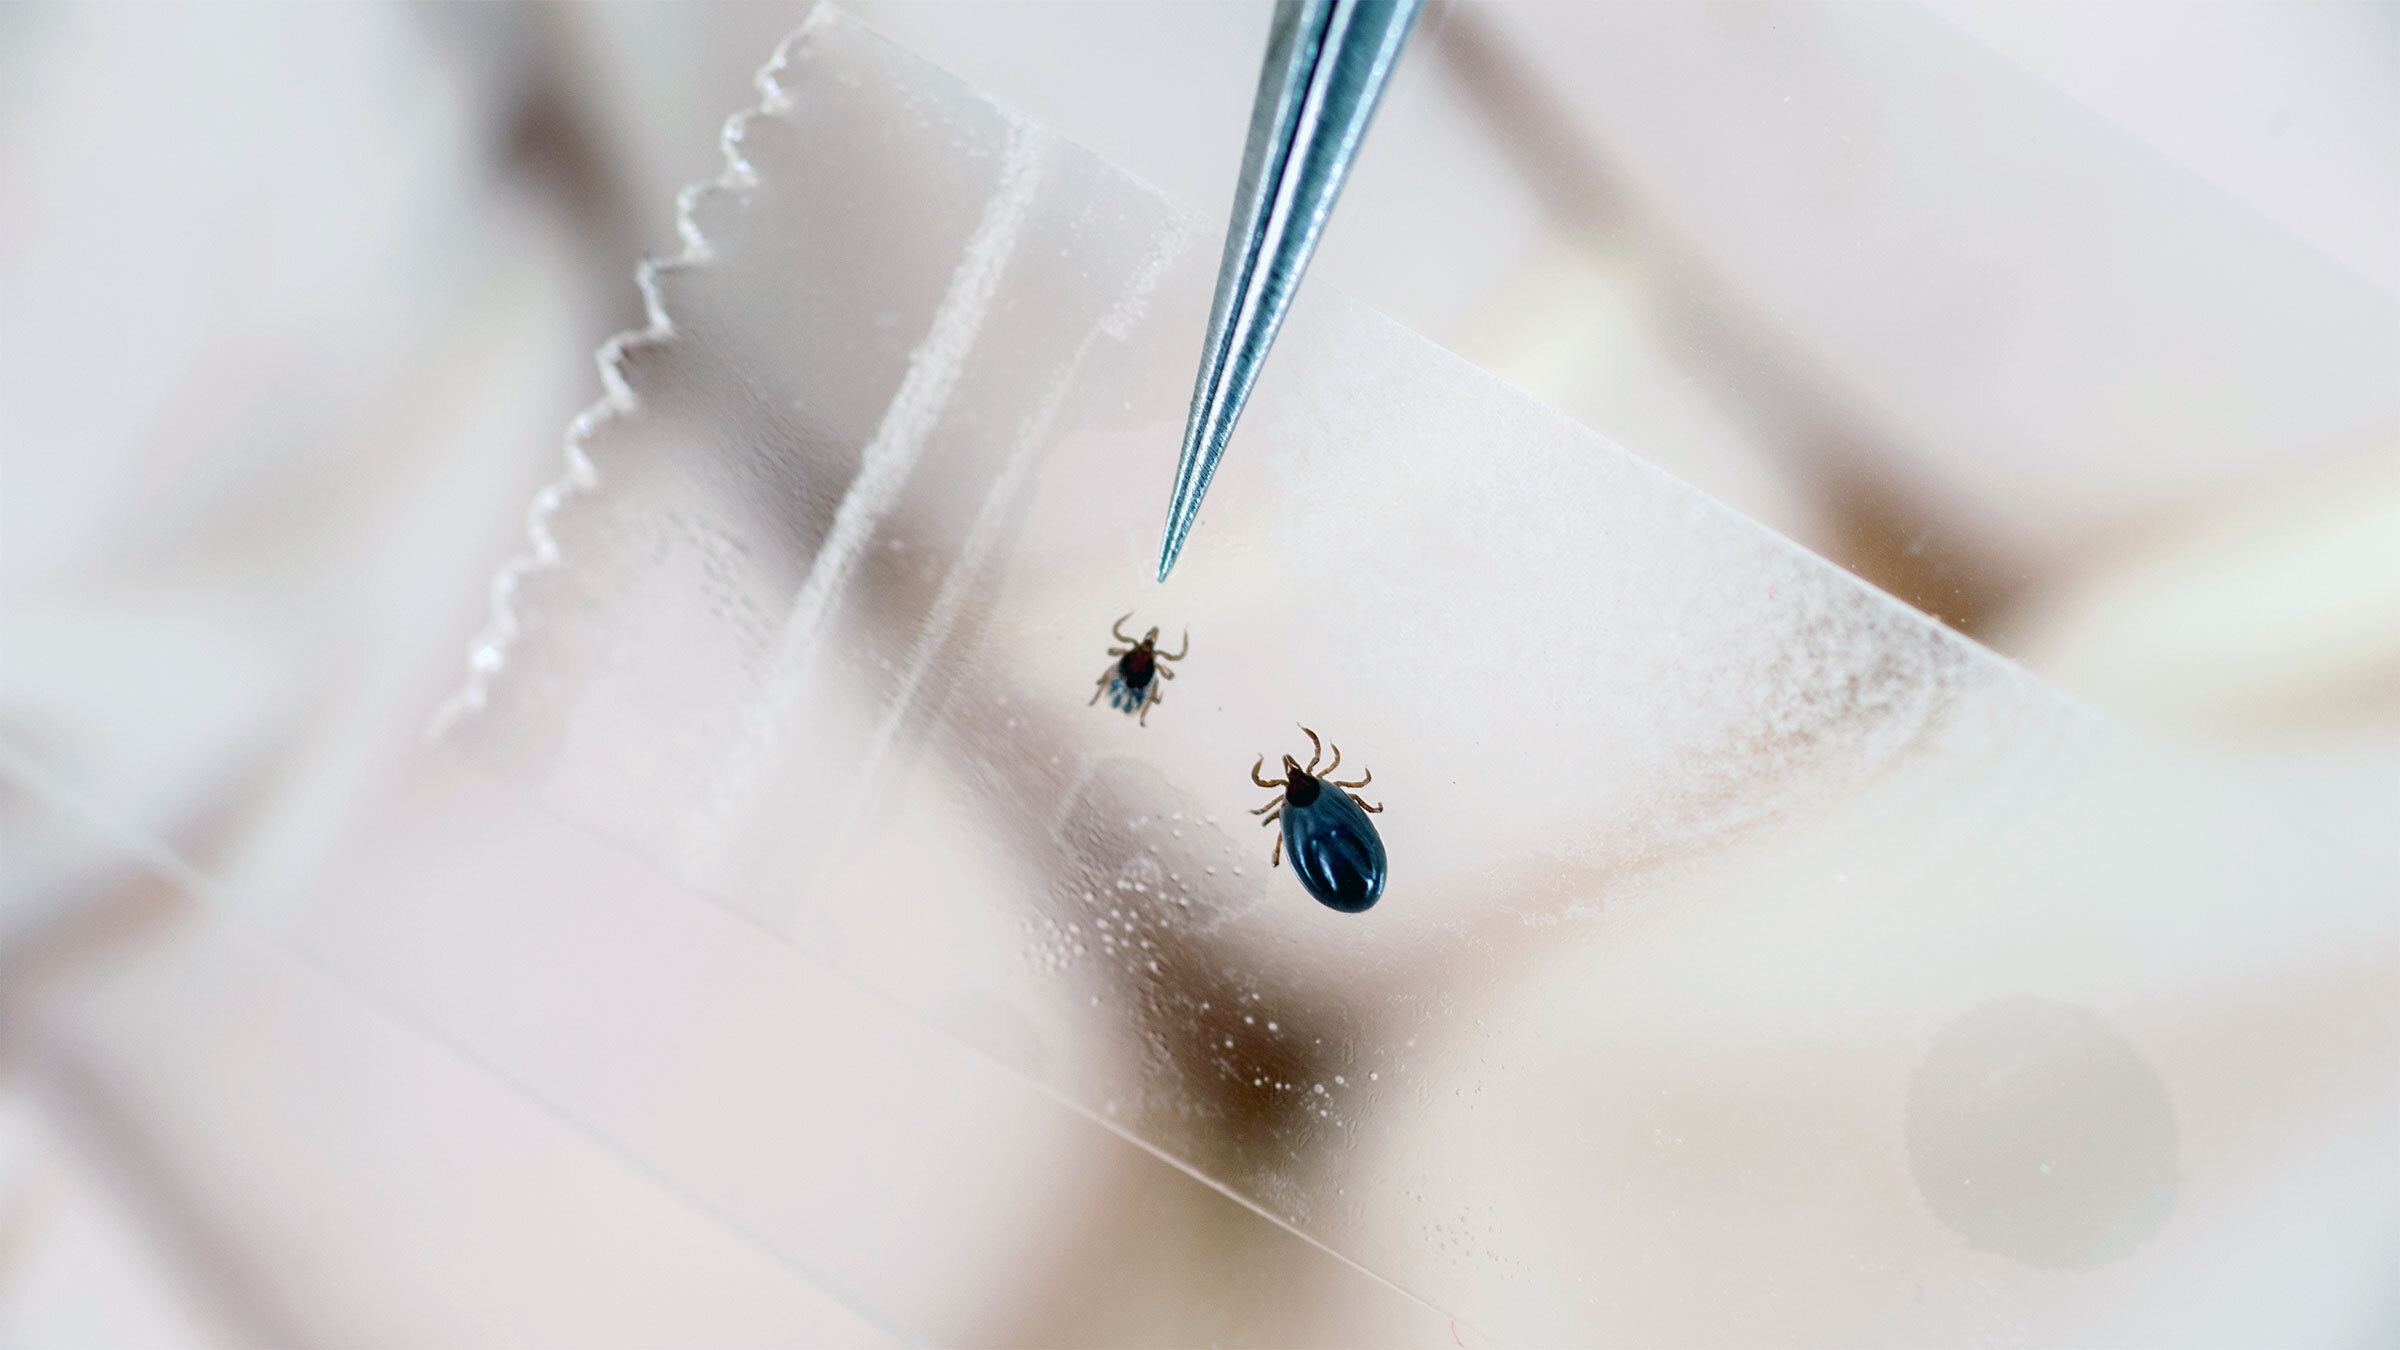 Lyme disease is the most common vector-borne illness in the United States, appearing in all 50 states and the District of Columbia. (Edwin Remsberg/VWPics via Getty Images file photo)